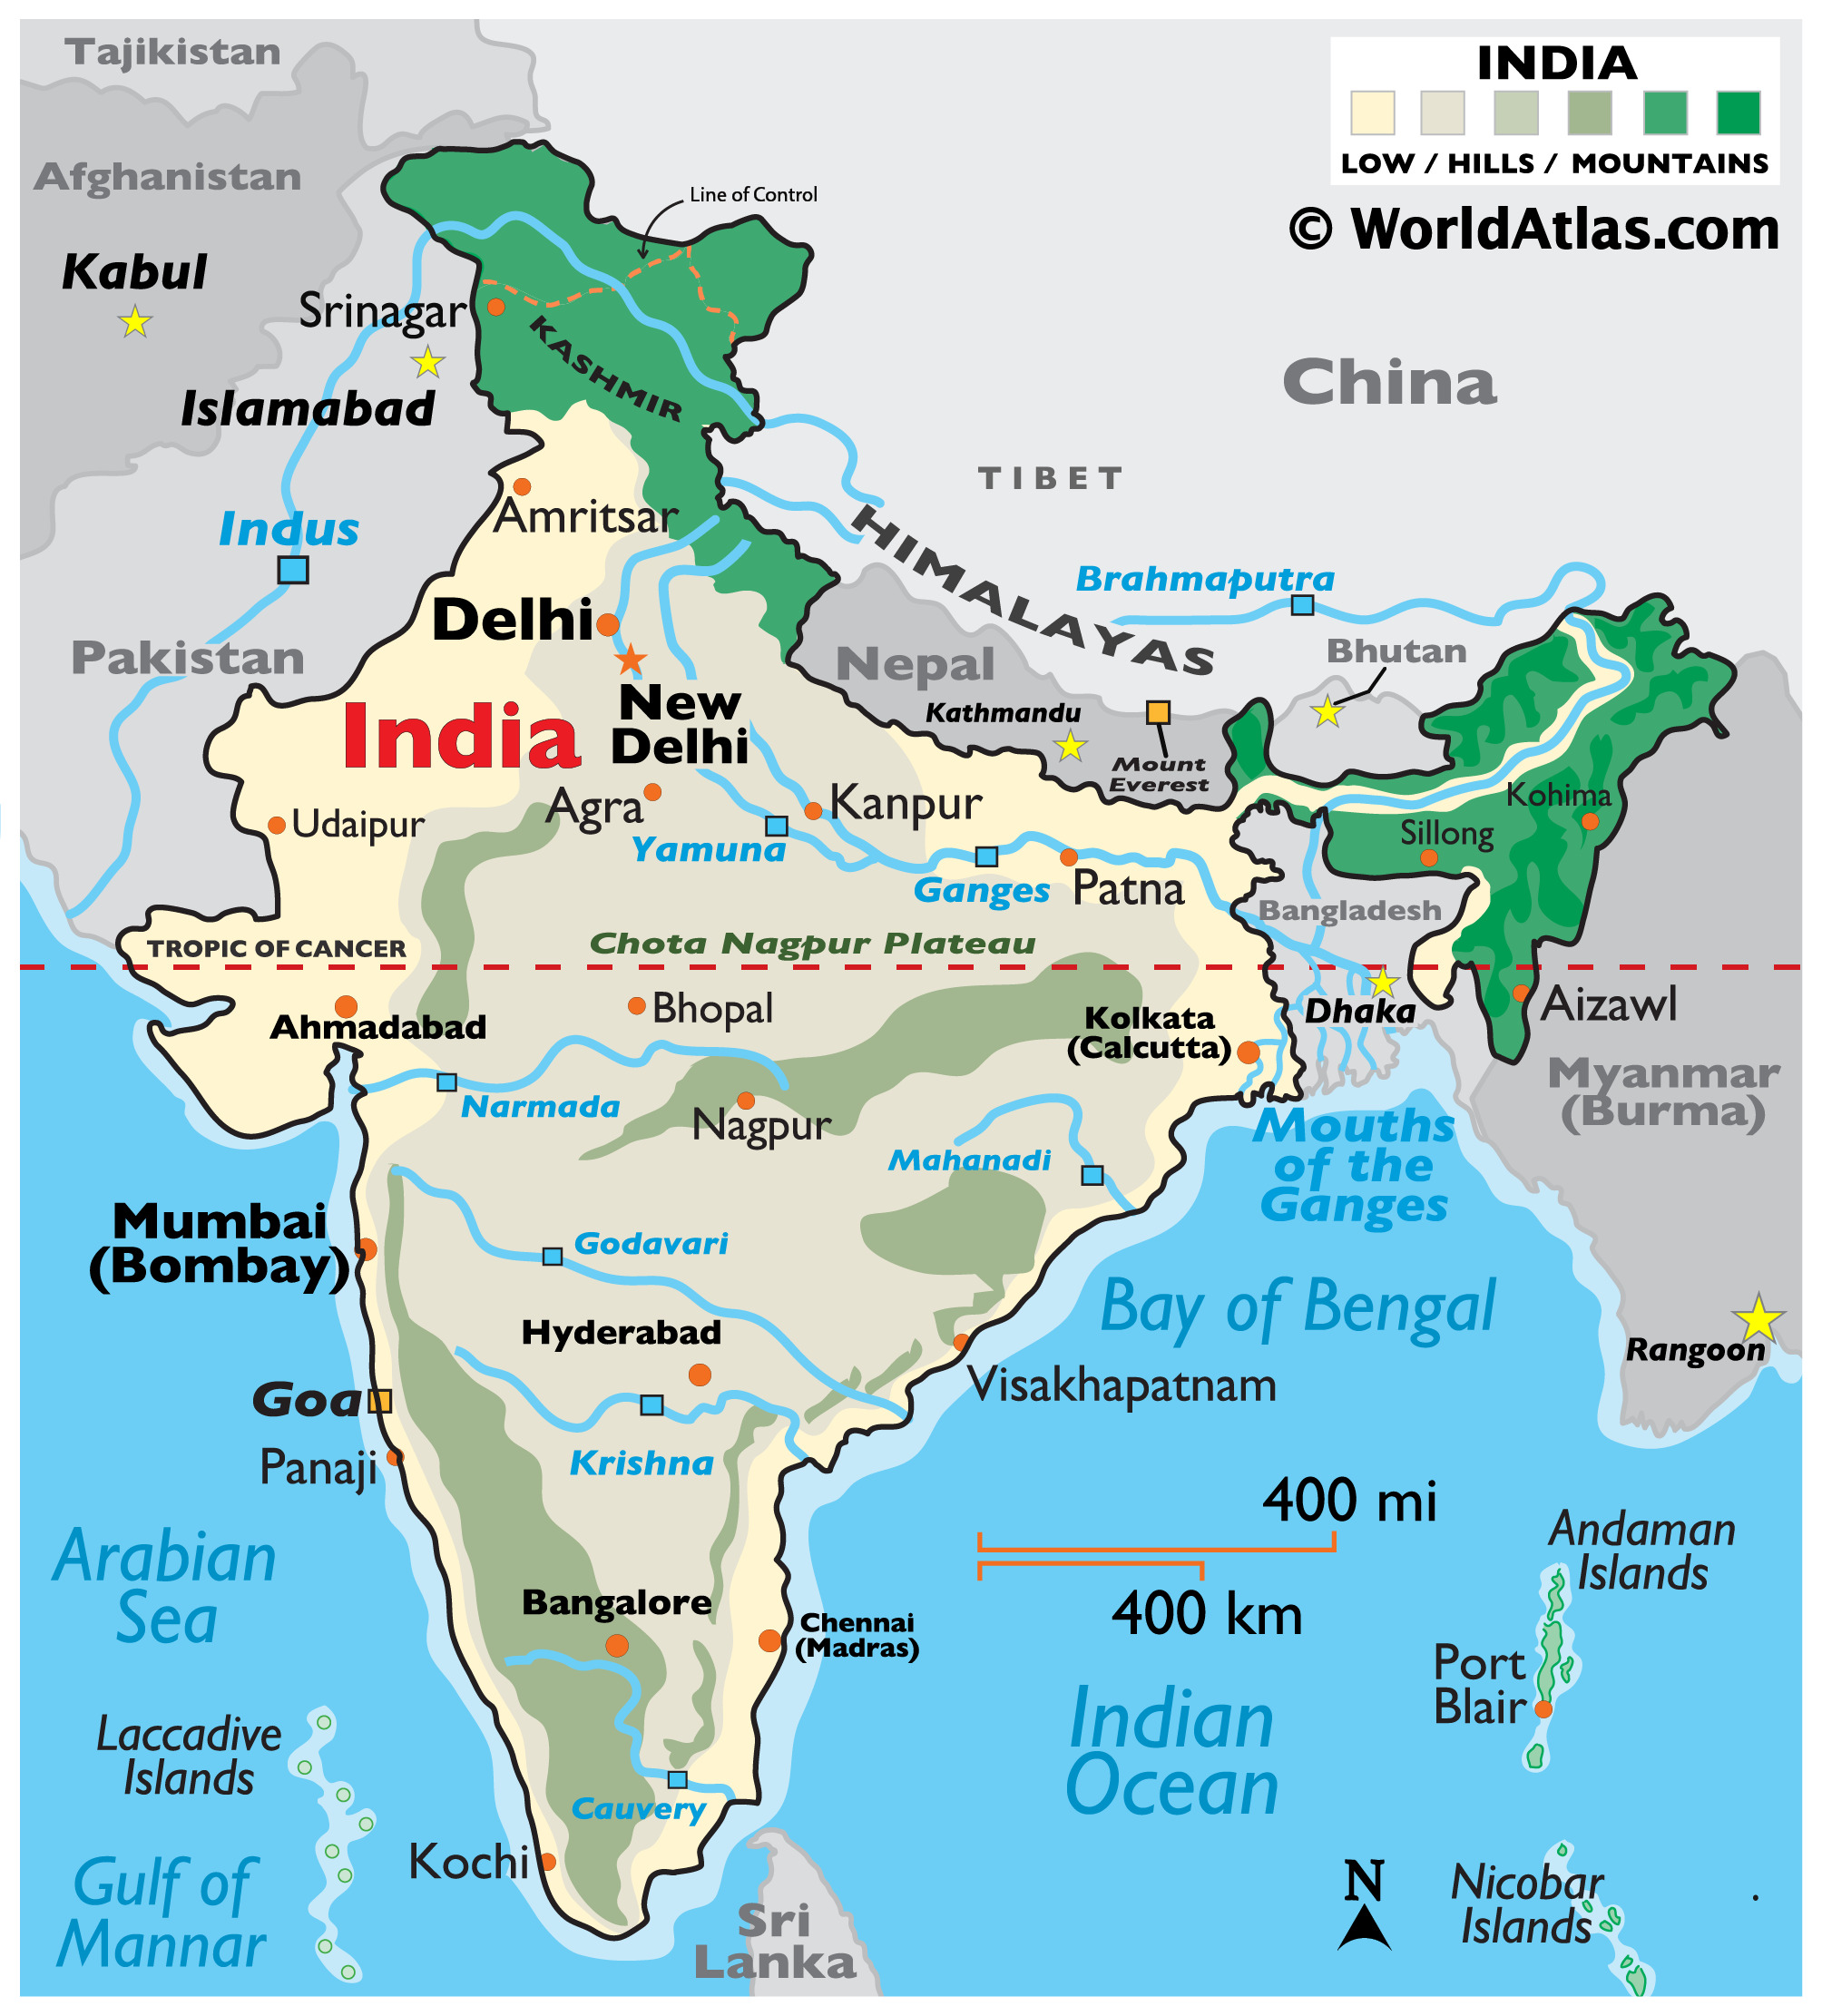 Physical map of India showing relief, mountain ranges, plateaus, major rivers, international borders, islands, important cities, and more.